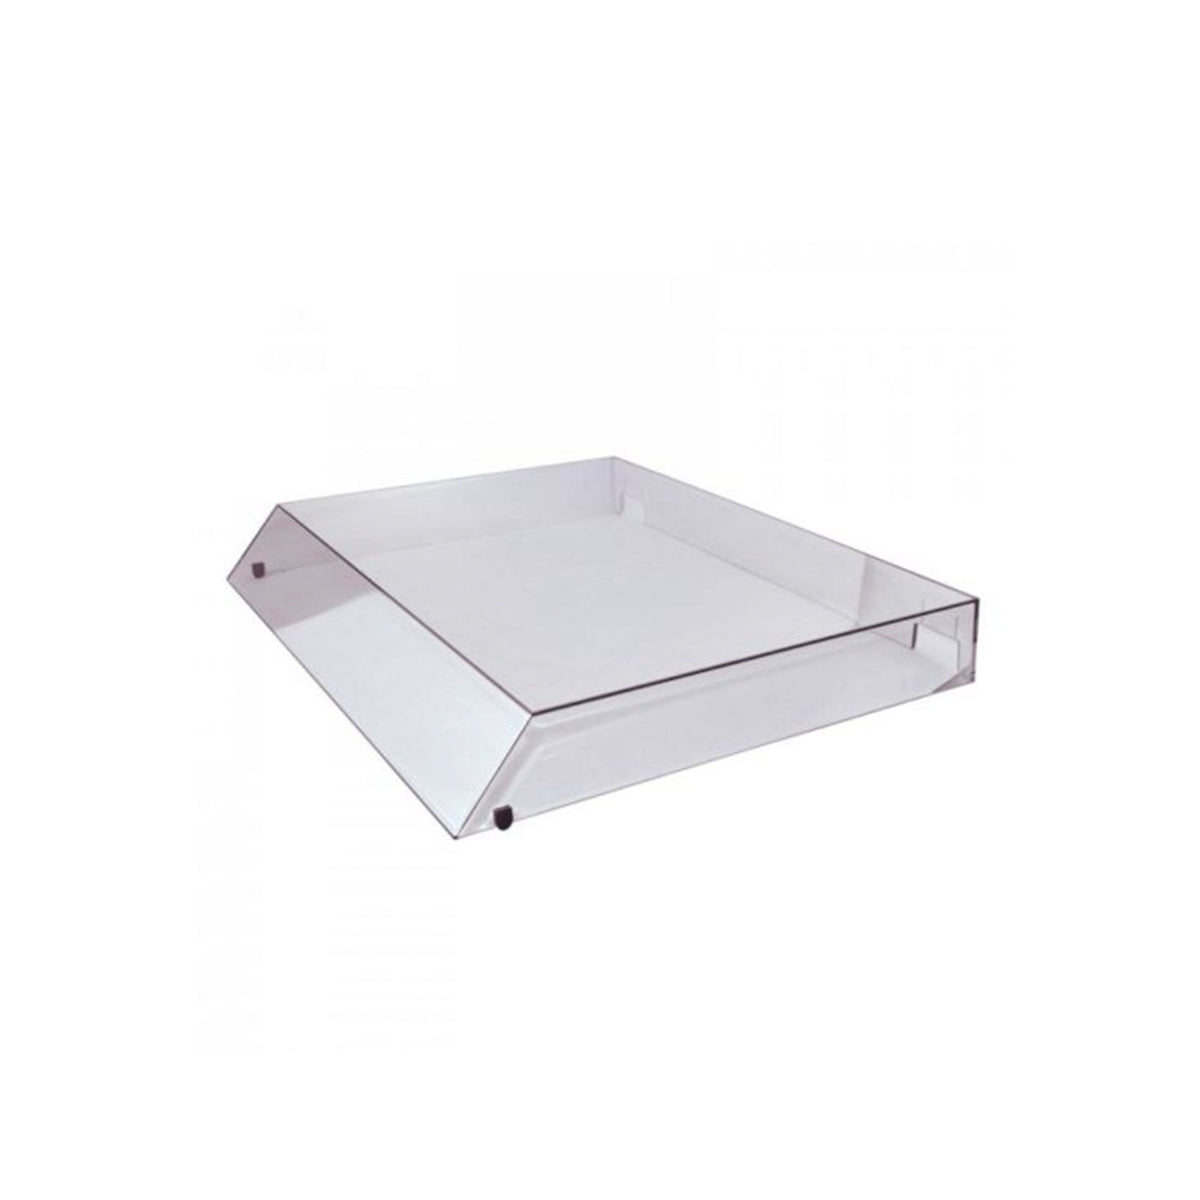 Dual Turntable Dusk Cover Lid E00902